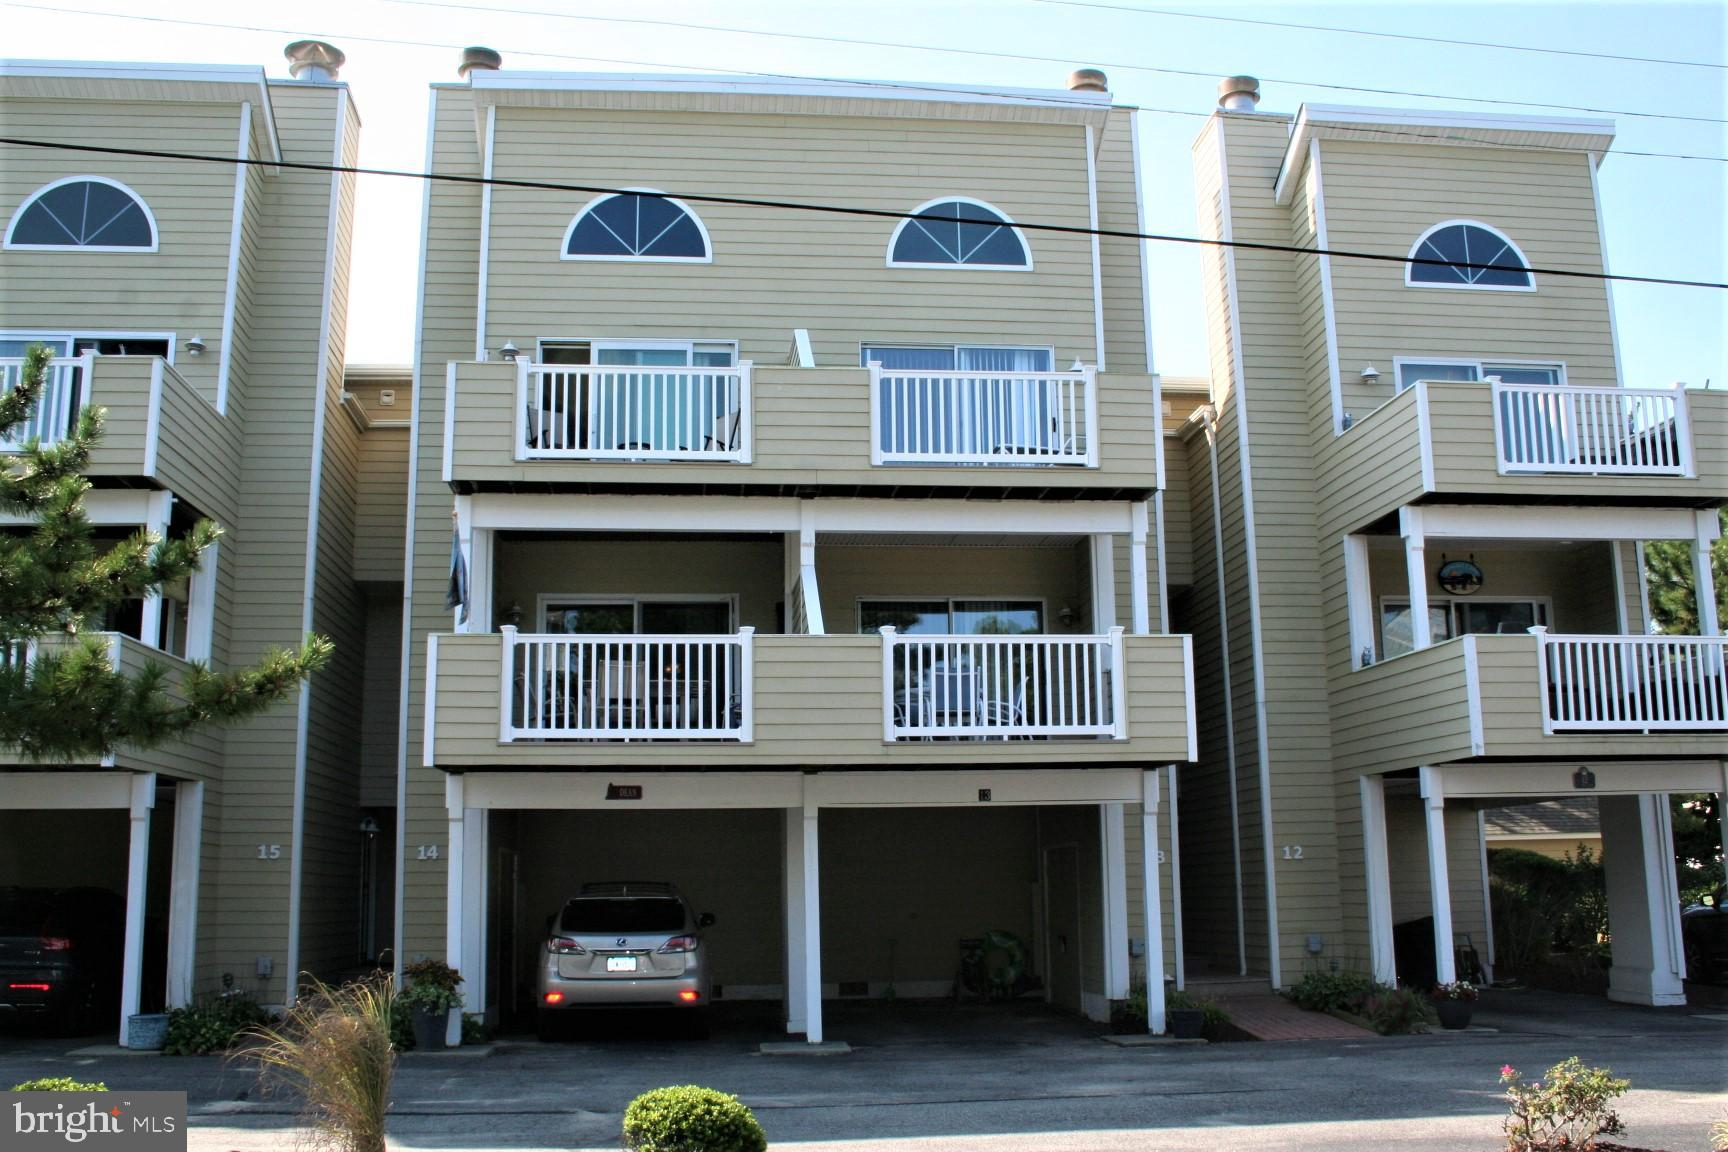 Popular Admirals Bridge unit with 3 Br. and 3.5 Ba. located in the middle of the block on the ocean